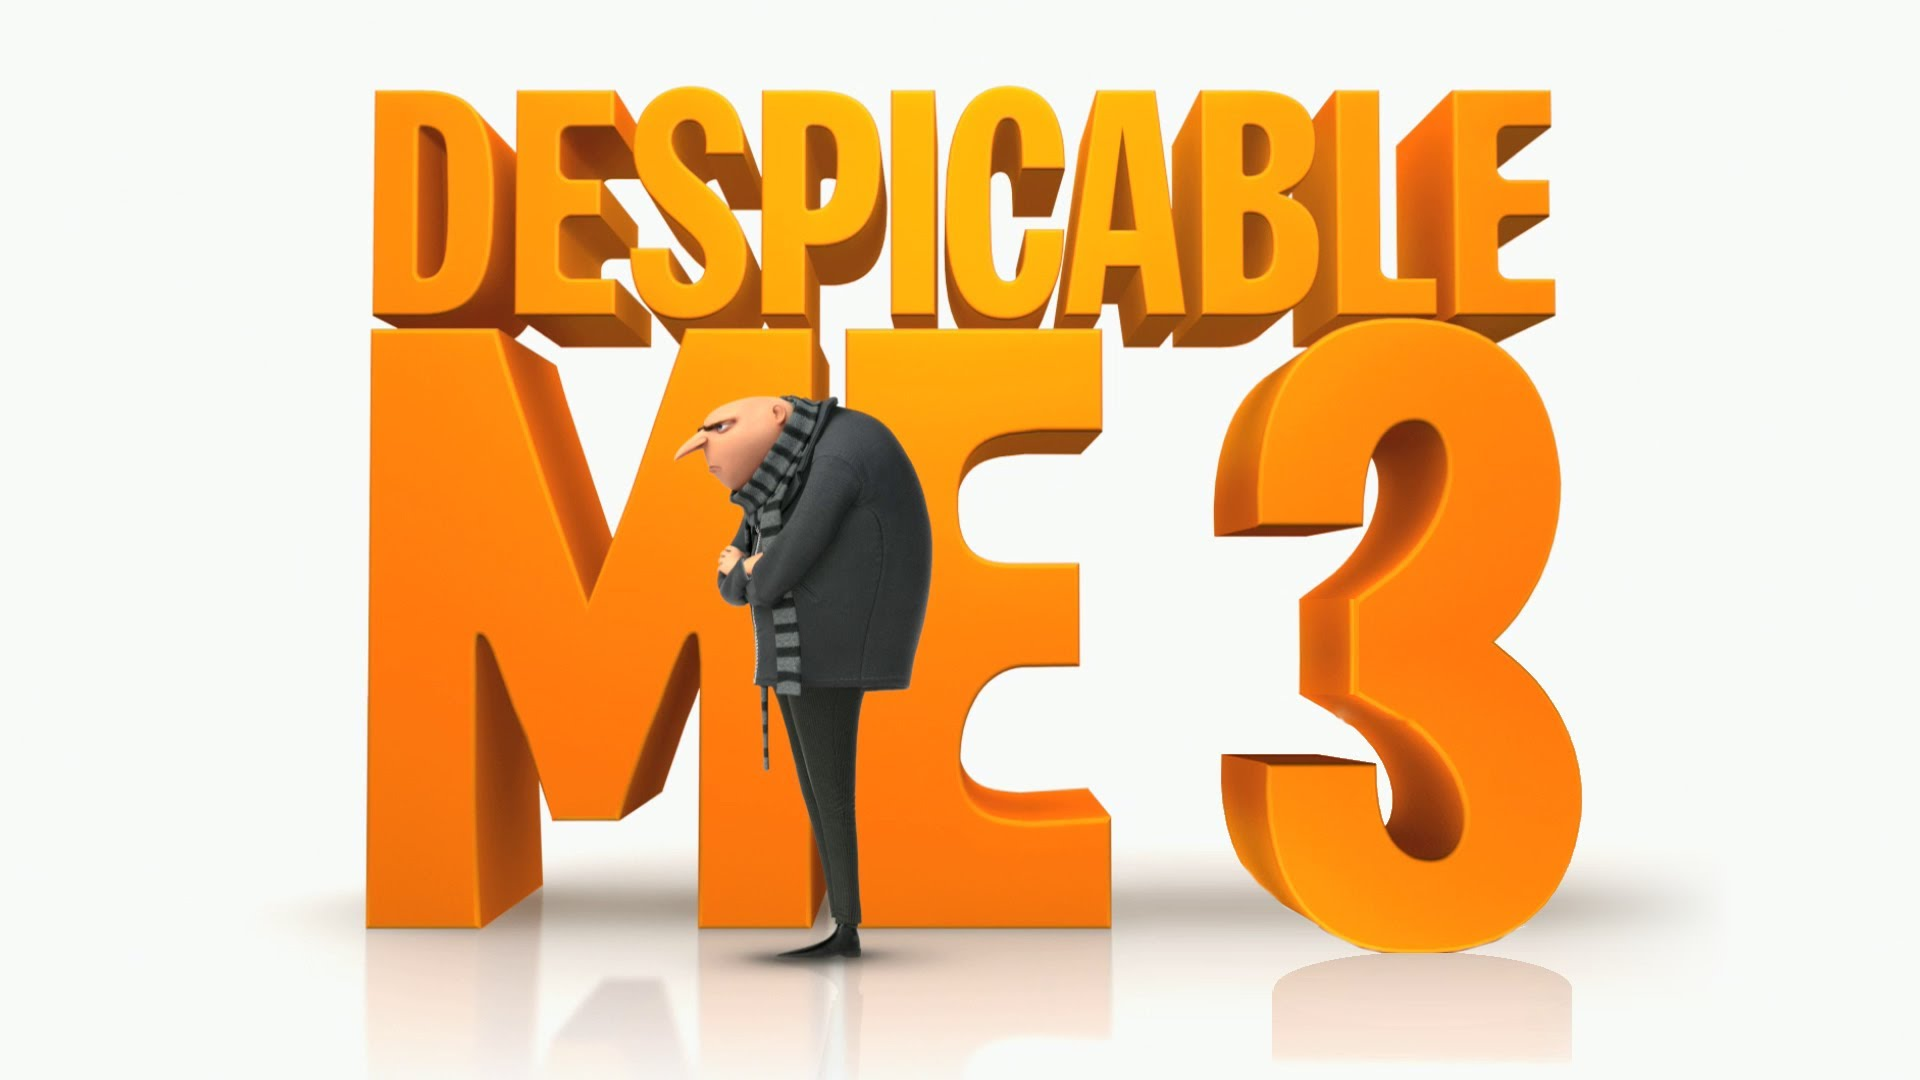 Cattivissimo me 3 - Despicable me 3